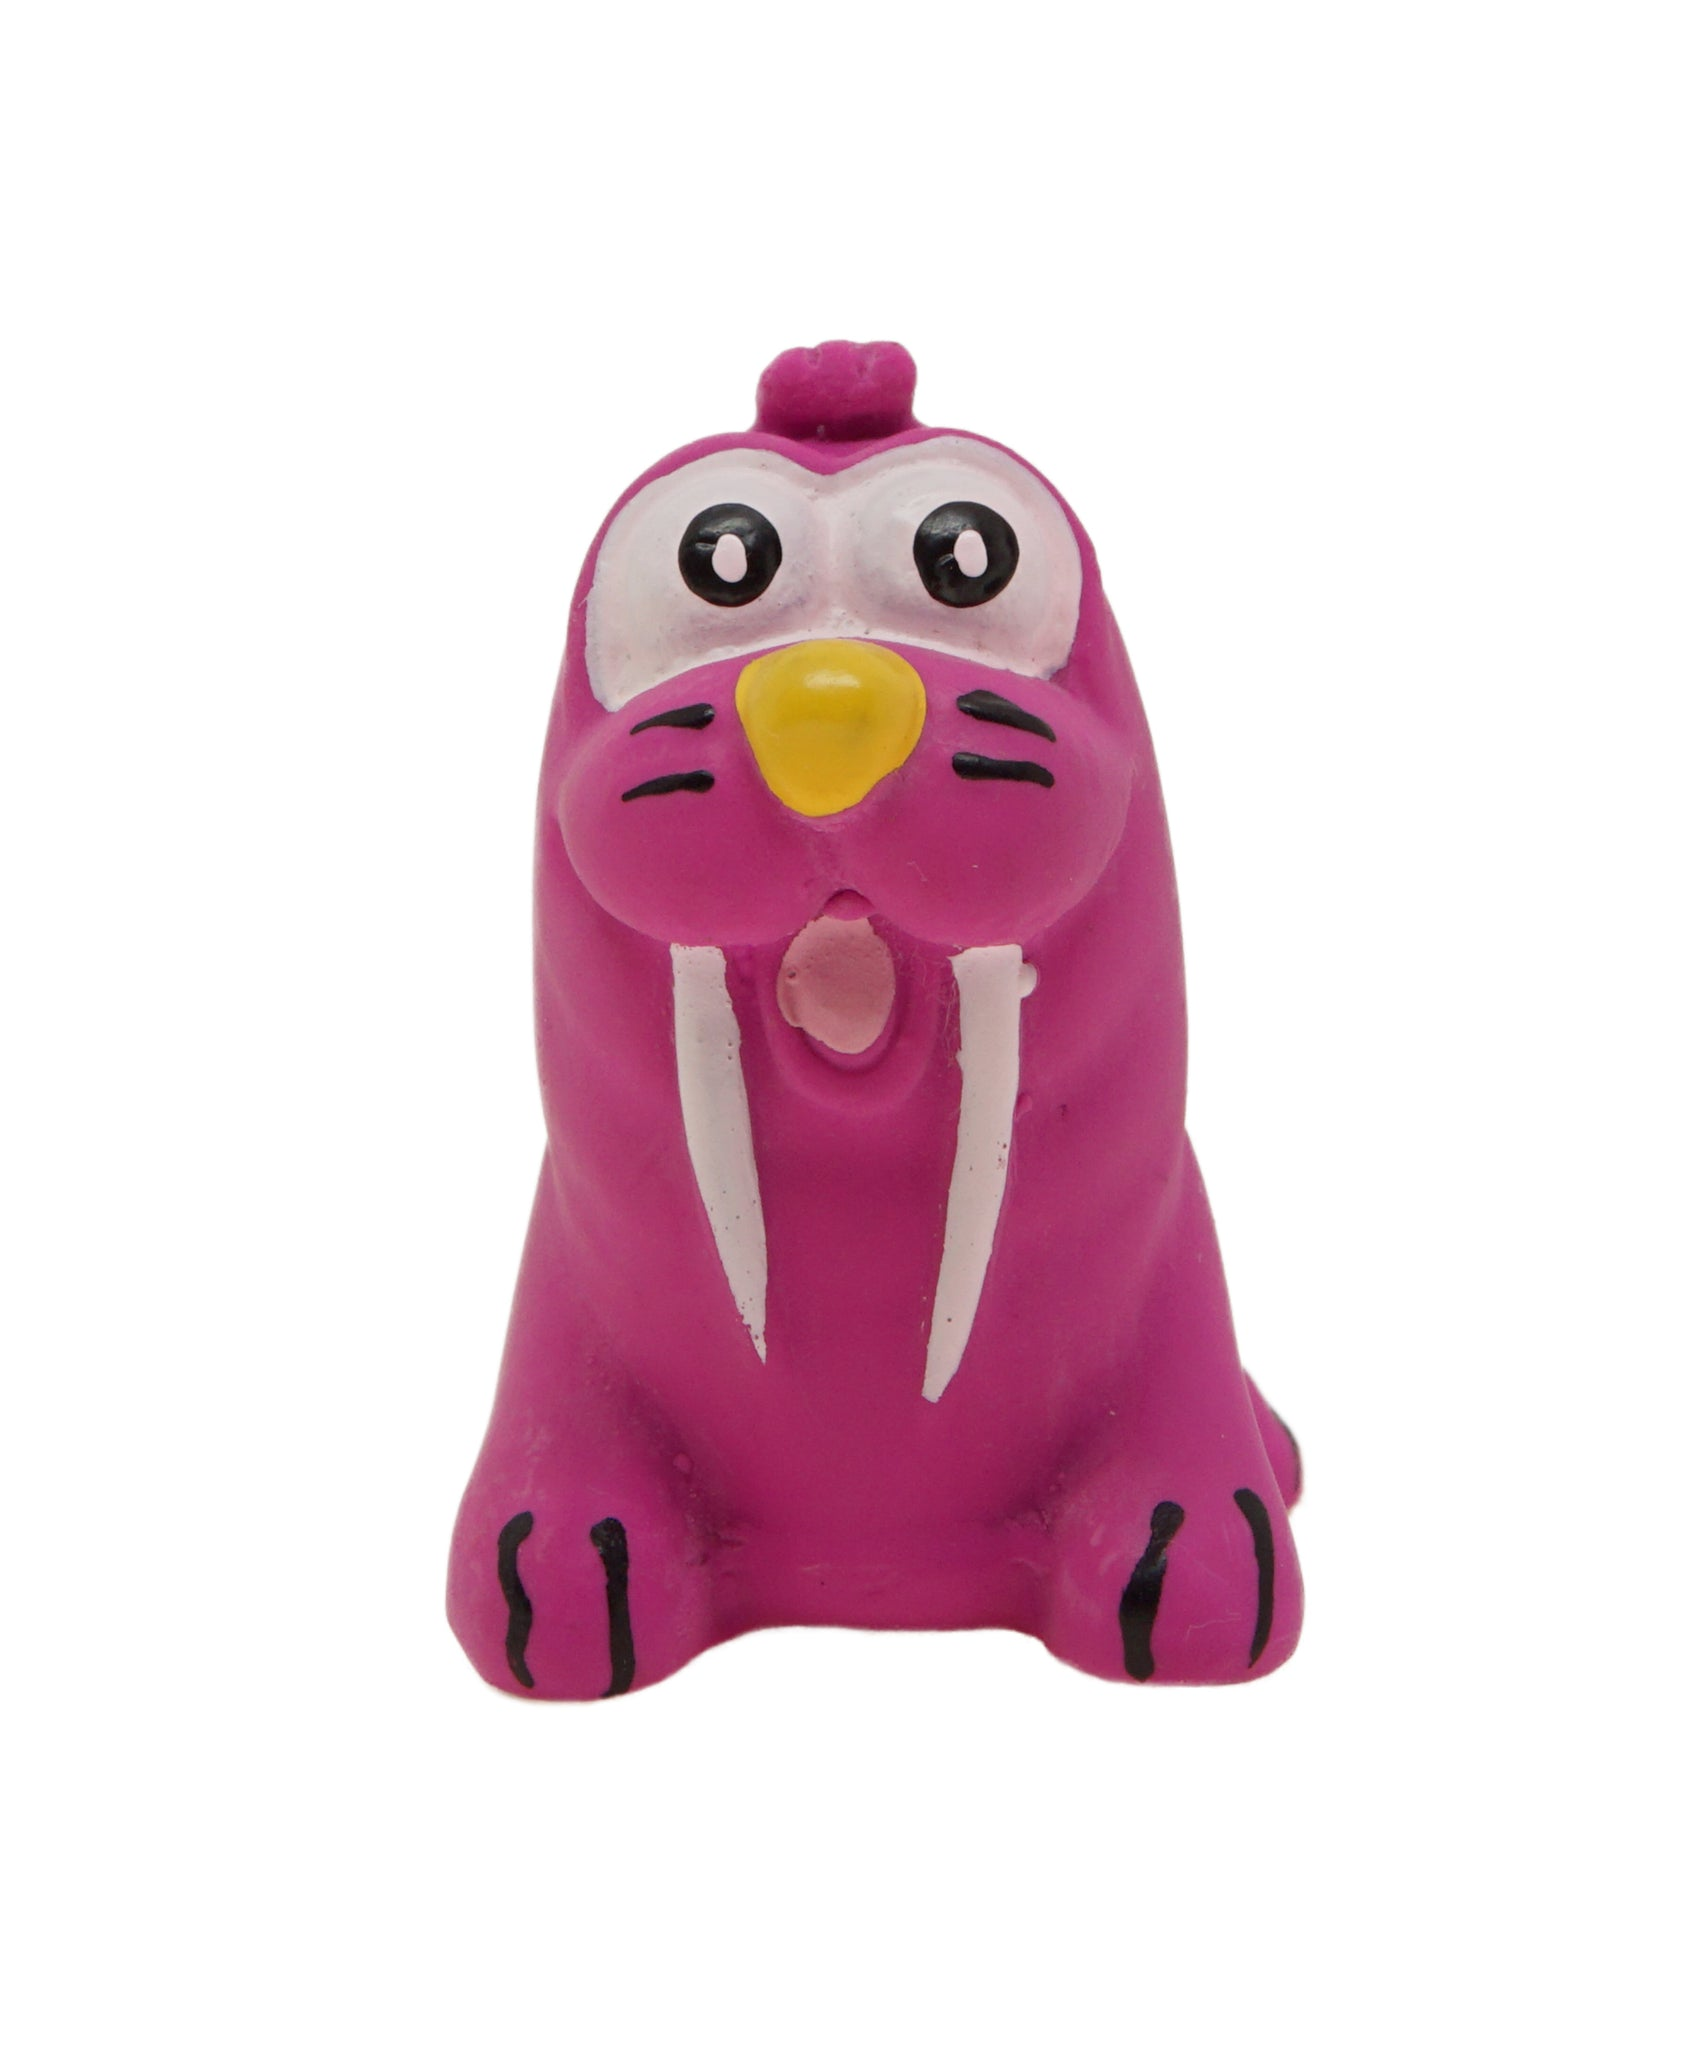 purple rubber seal dog toy 3